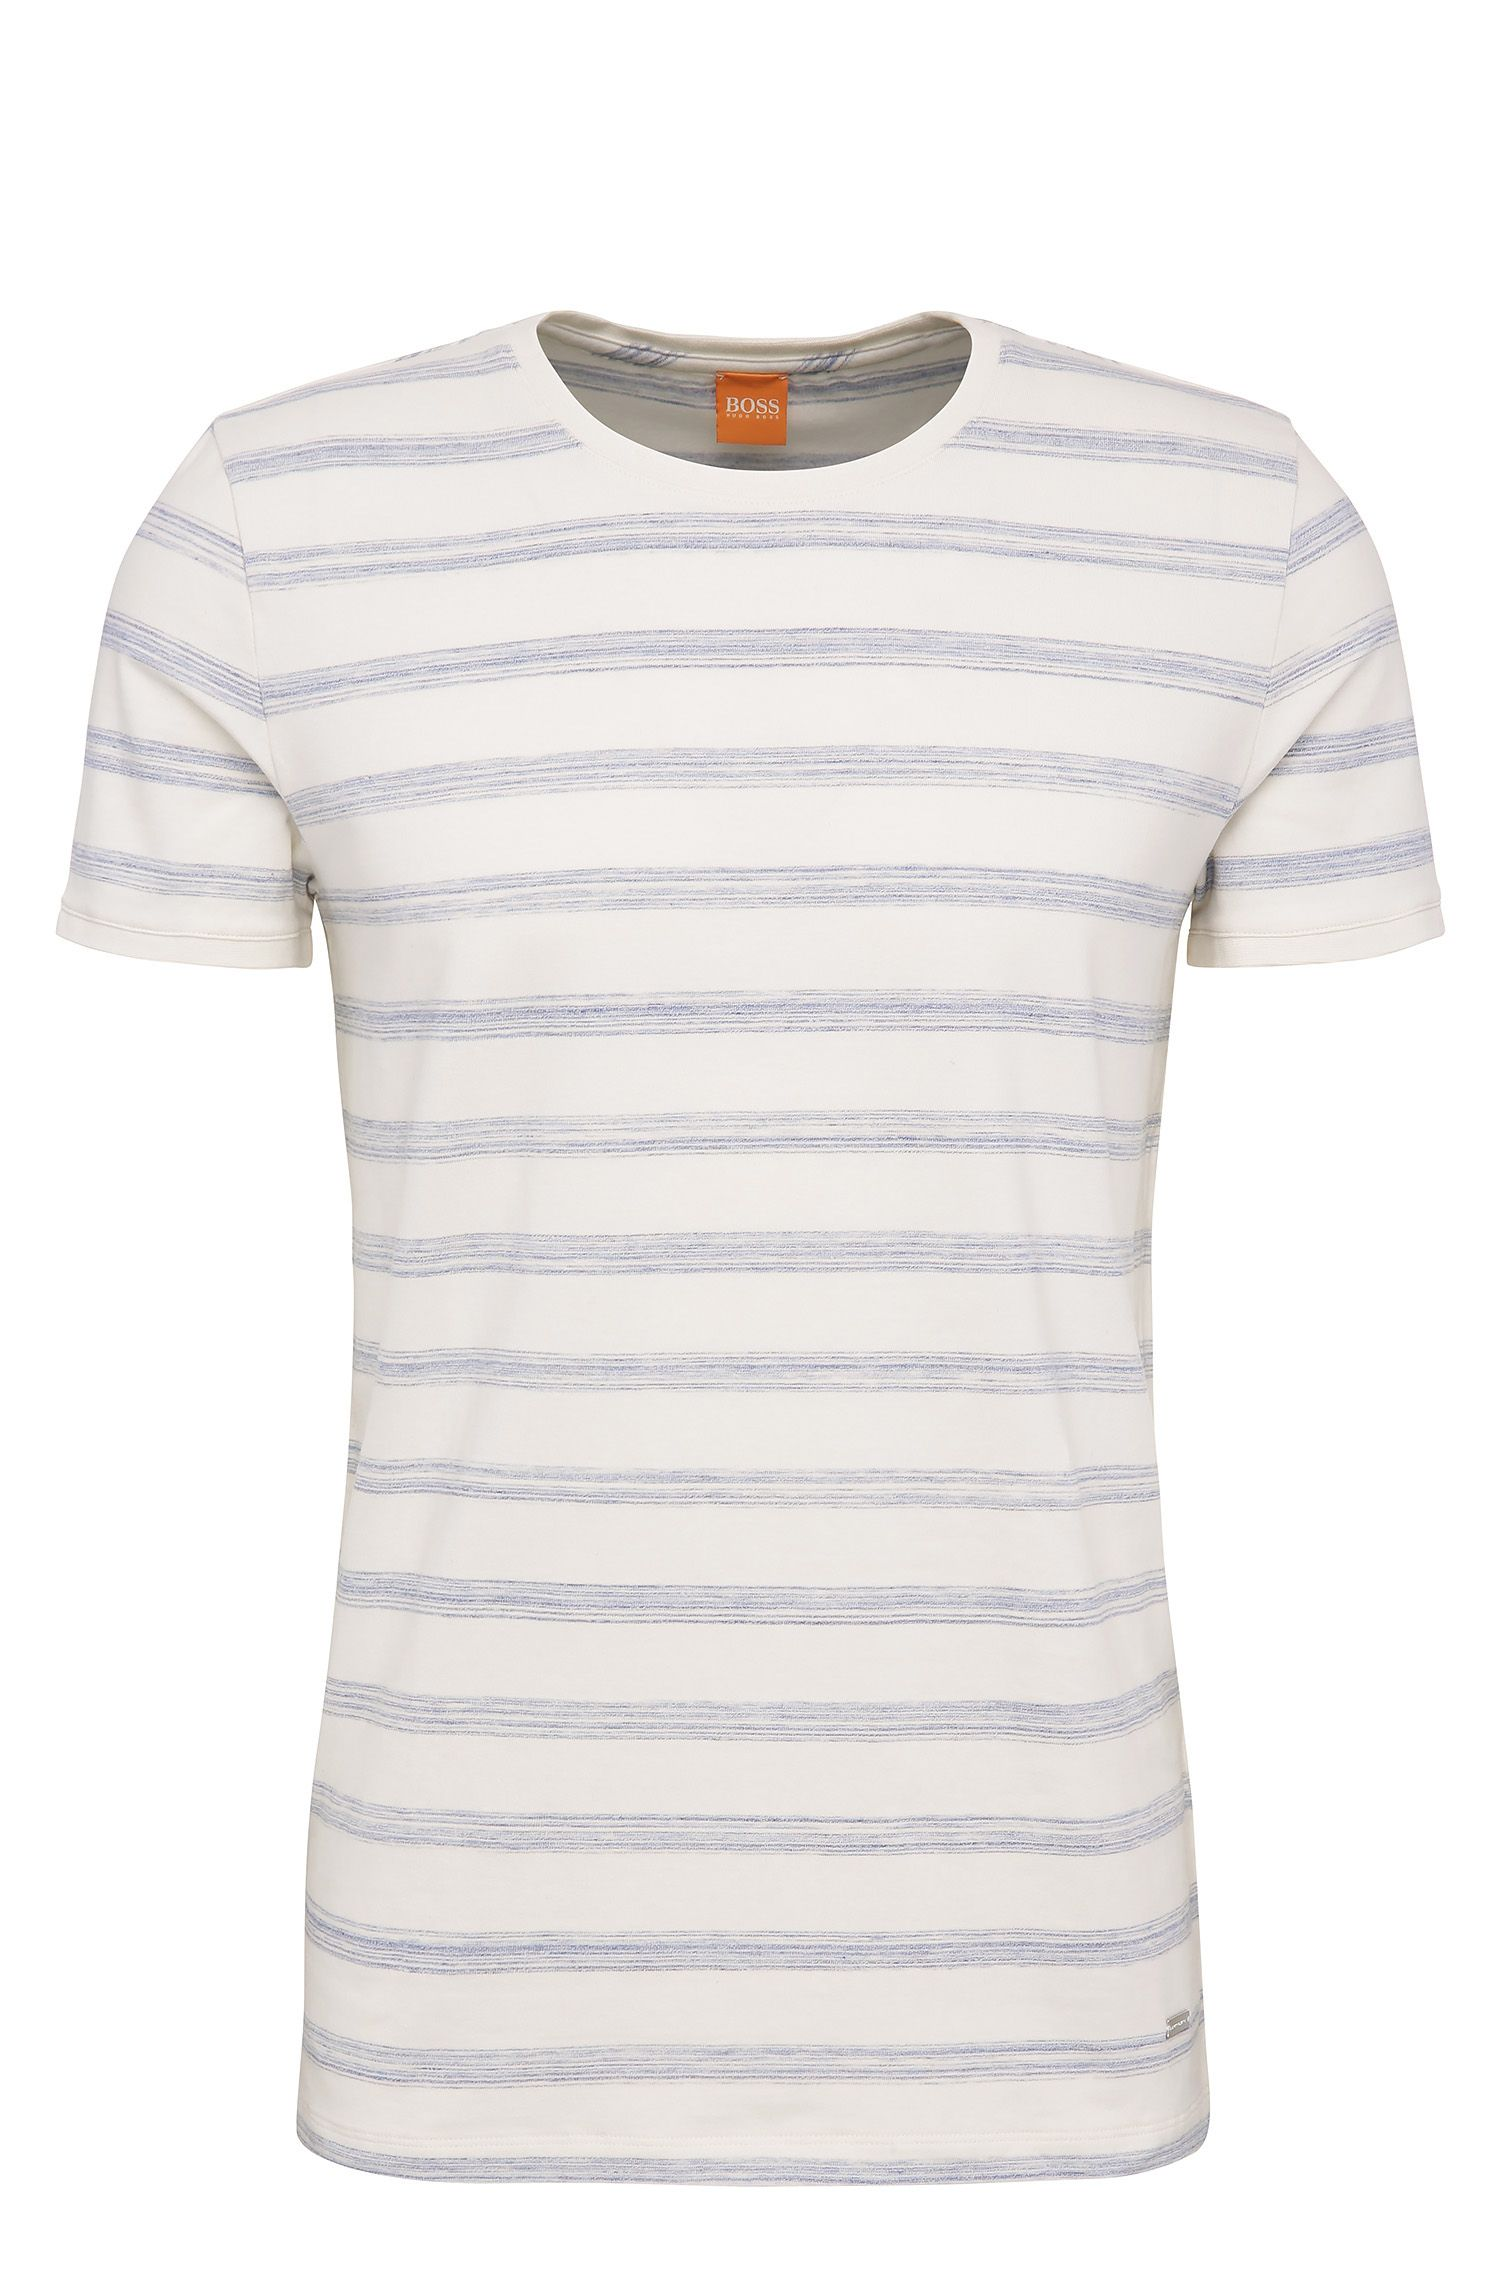 T-shirt Relaxed-Fit en coton extensible, à motif rayé : « Tex »